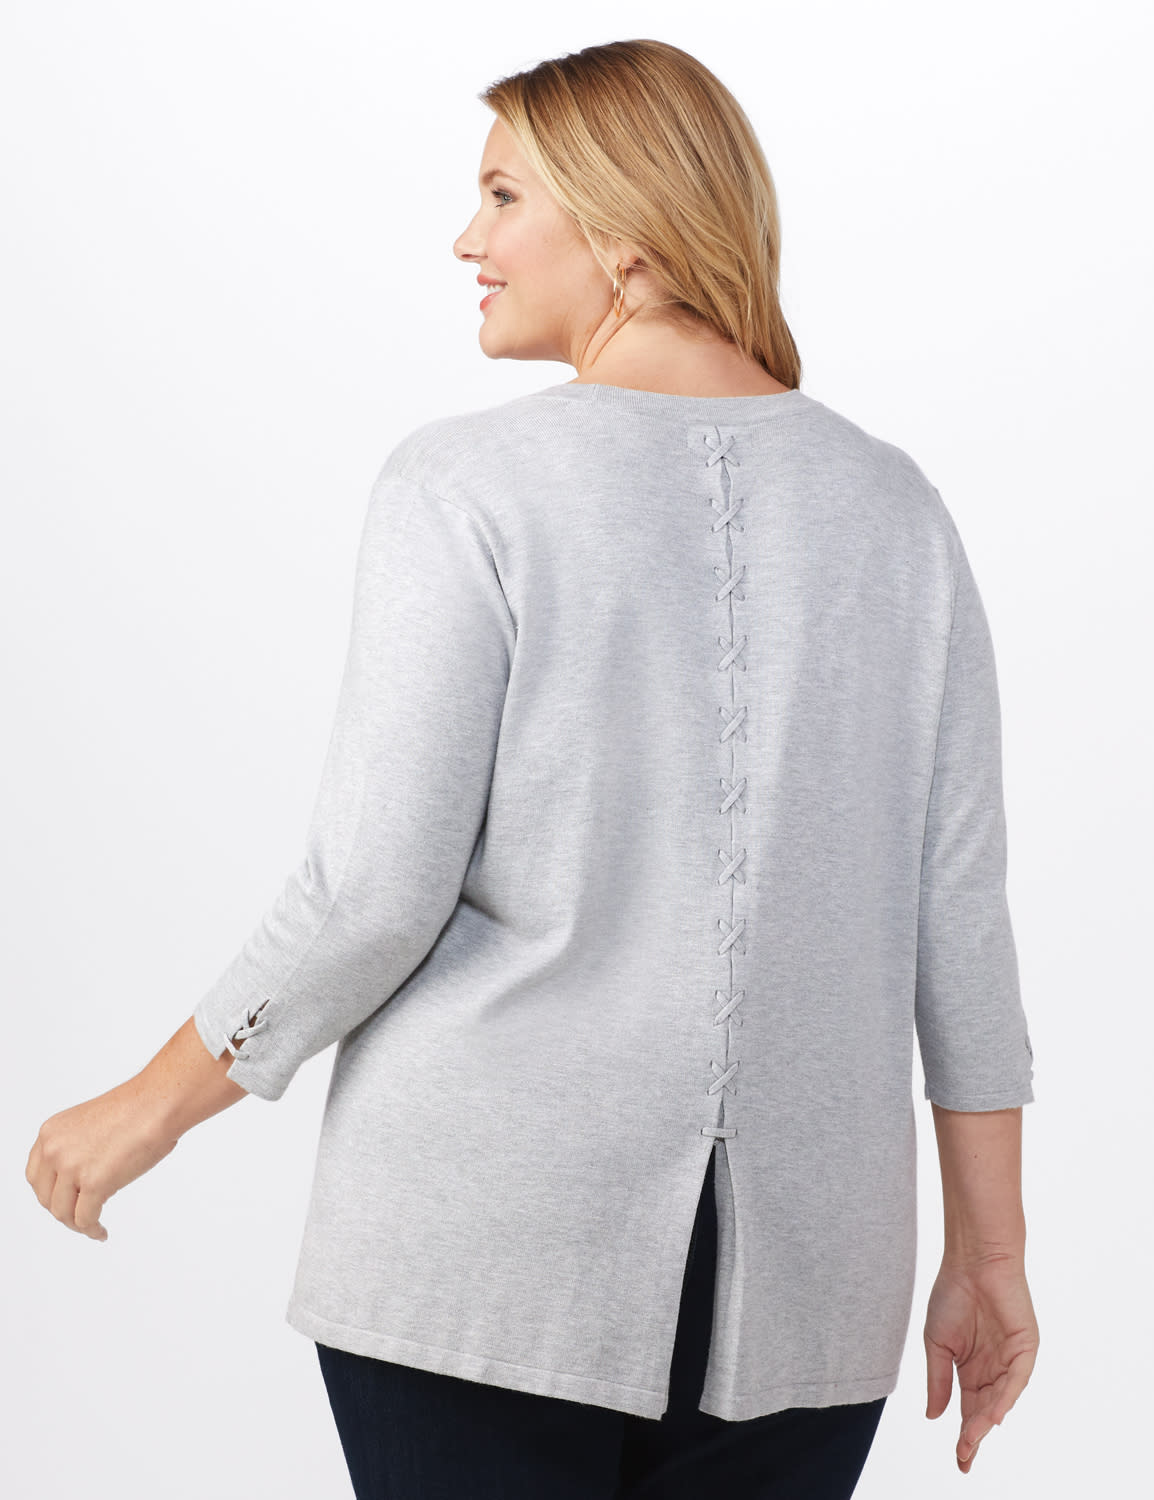 Roz & Ali Lace-Up Back Cardigan - Plus - Light Heather Grey - Back